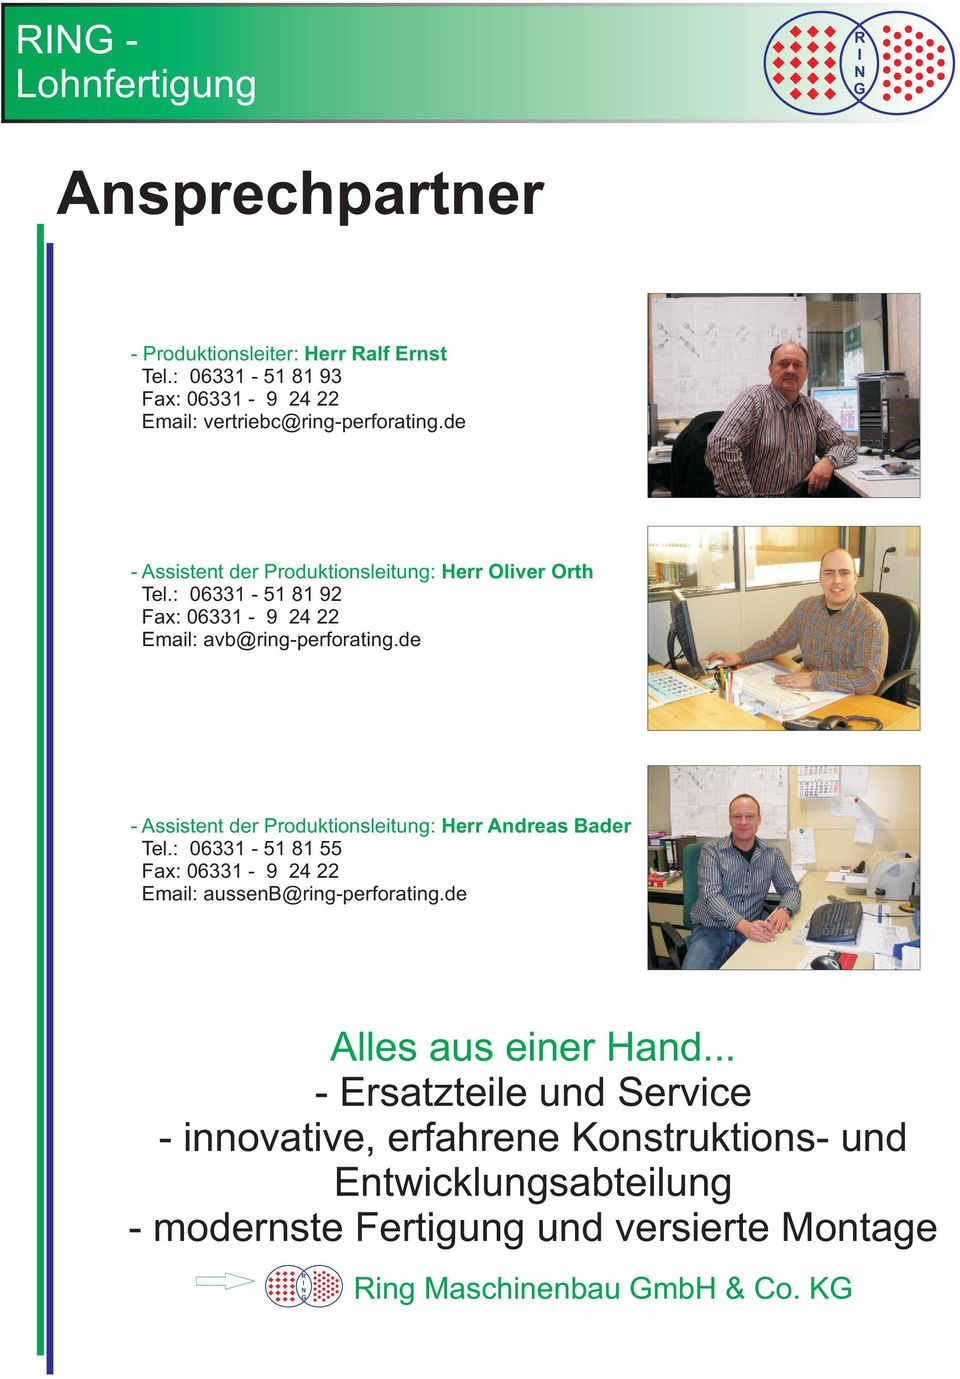 de - Assistent der Produktionsleitung: Herr Andreas Bader Tel.: 06331-51 81 55 Fax: 06331-9 24 22 Email: aussenb@ring-perforating.